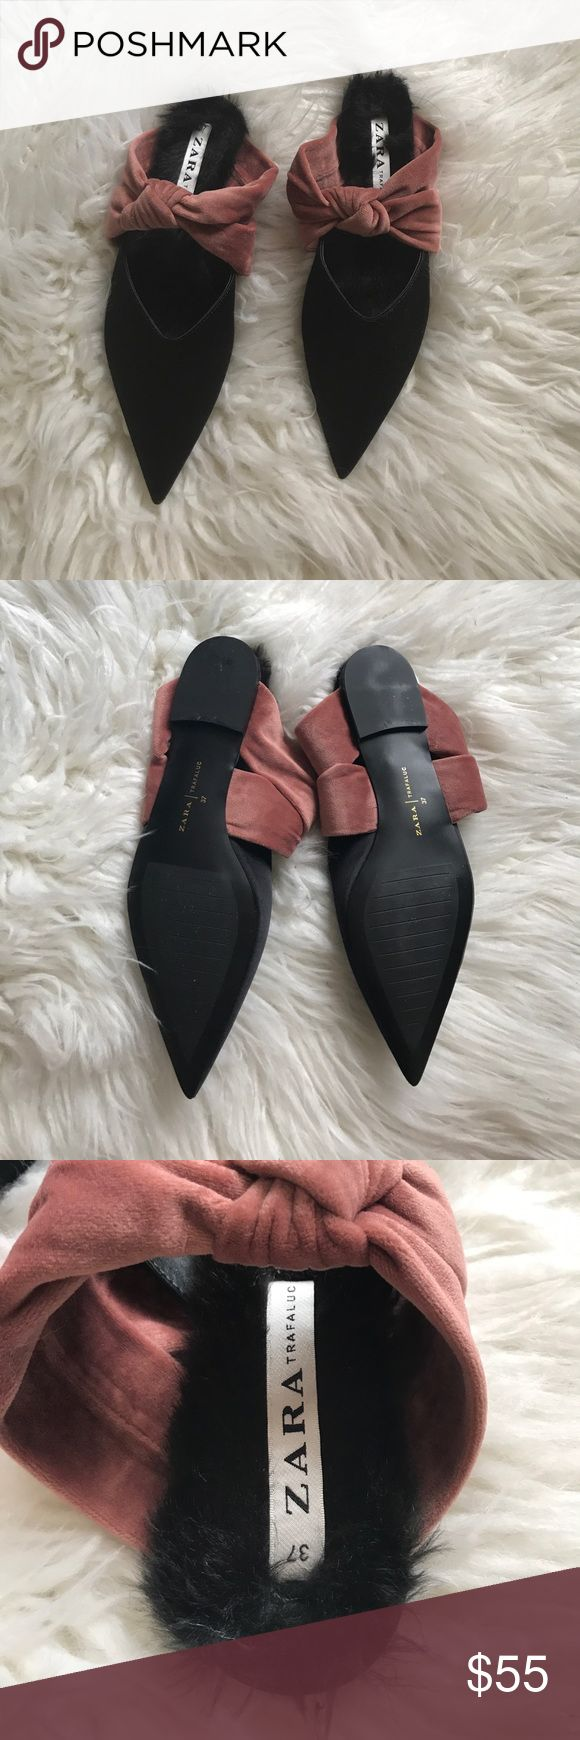 ZARA Black Satin Pink Velvet Bow Fur Mule Flat 37 Slips on. Pointed toe. Satin upper with velvet bow. Faux fur lining. Man made sole. Size 37, fits like a 6.5-7. New! Never worn! Bought w/o tags Zara Shoes Flats & Loafers